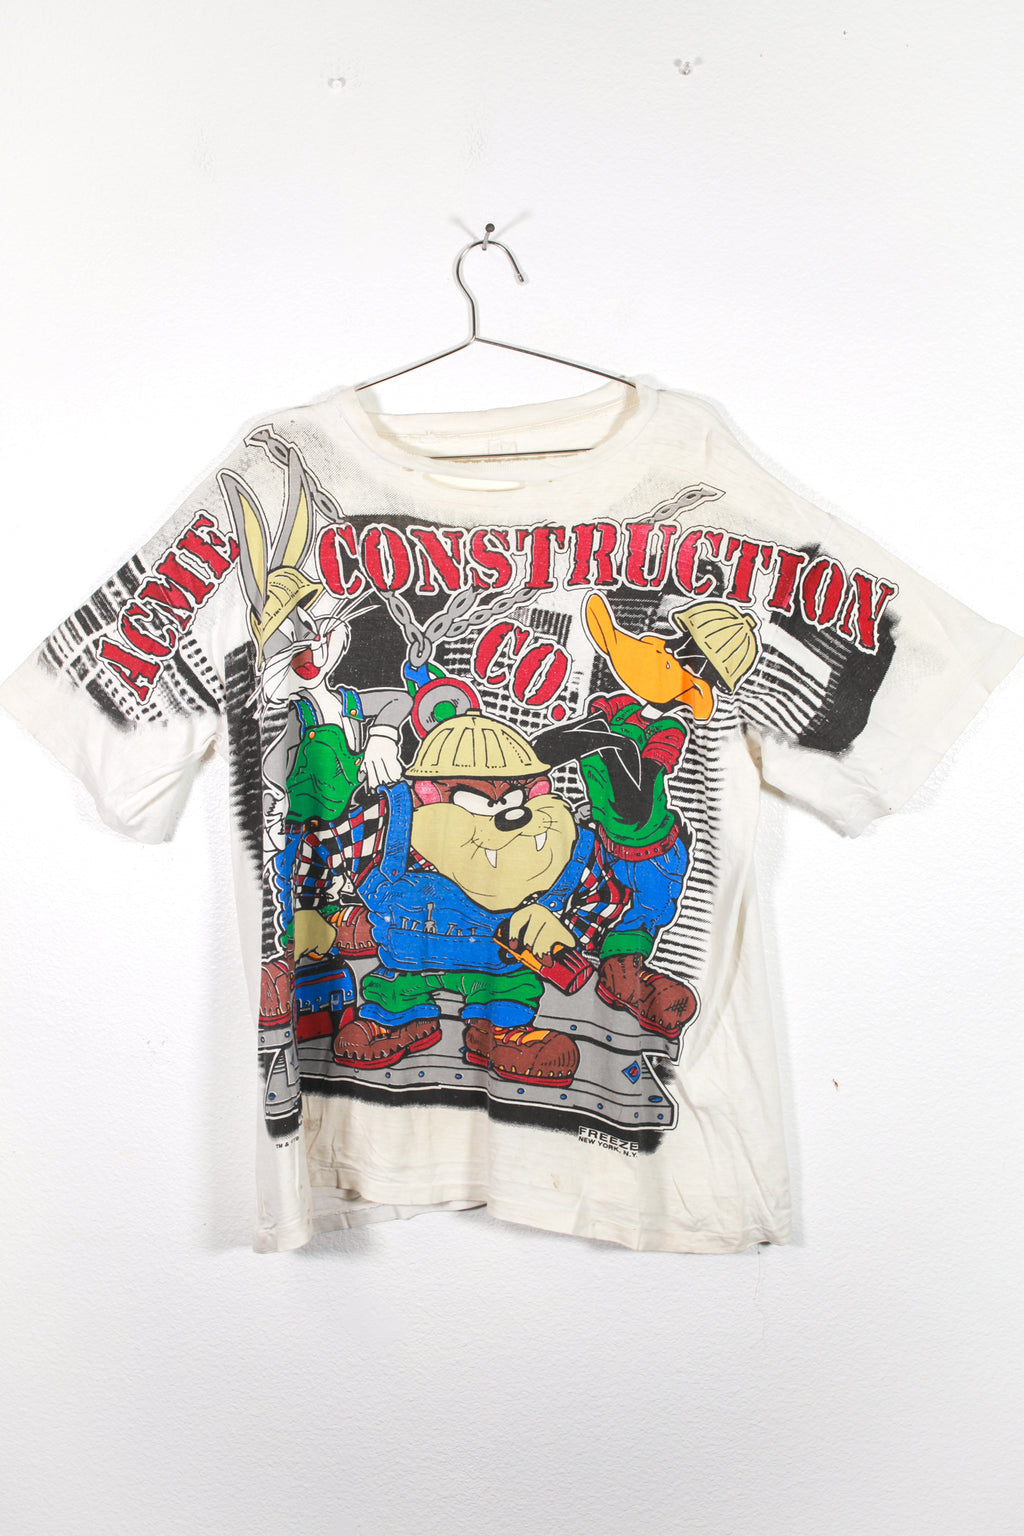 Vintage ACME Constuction Tee